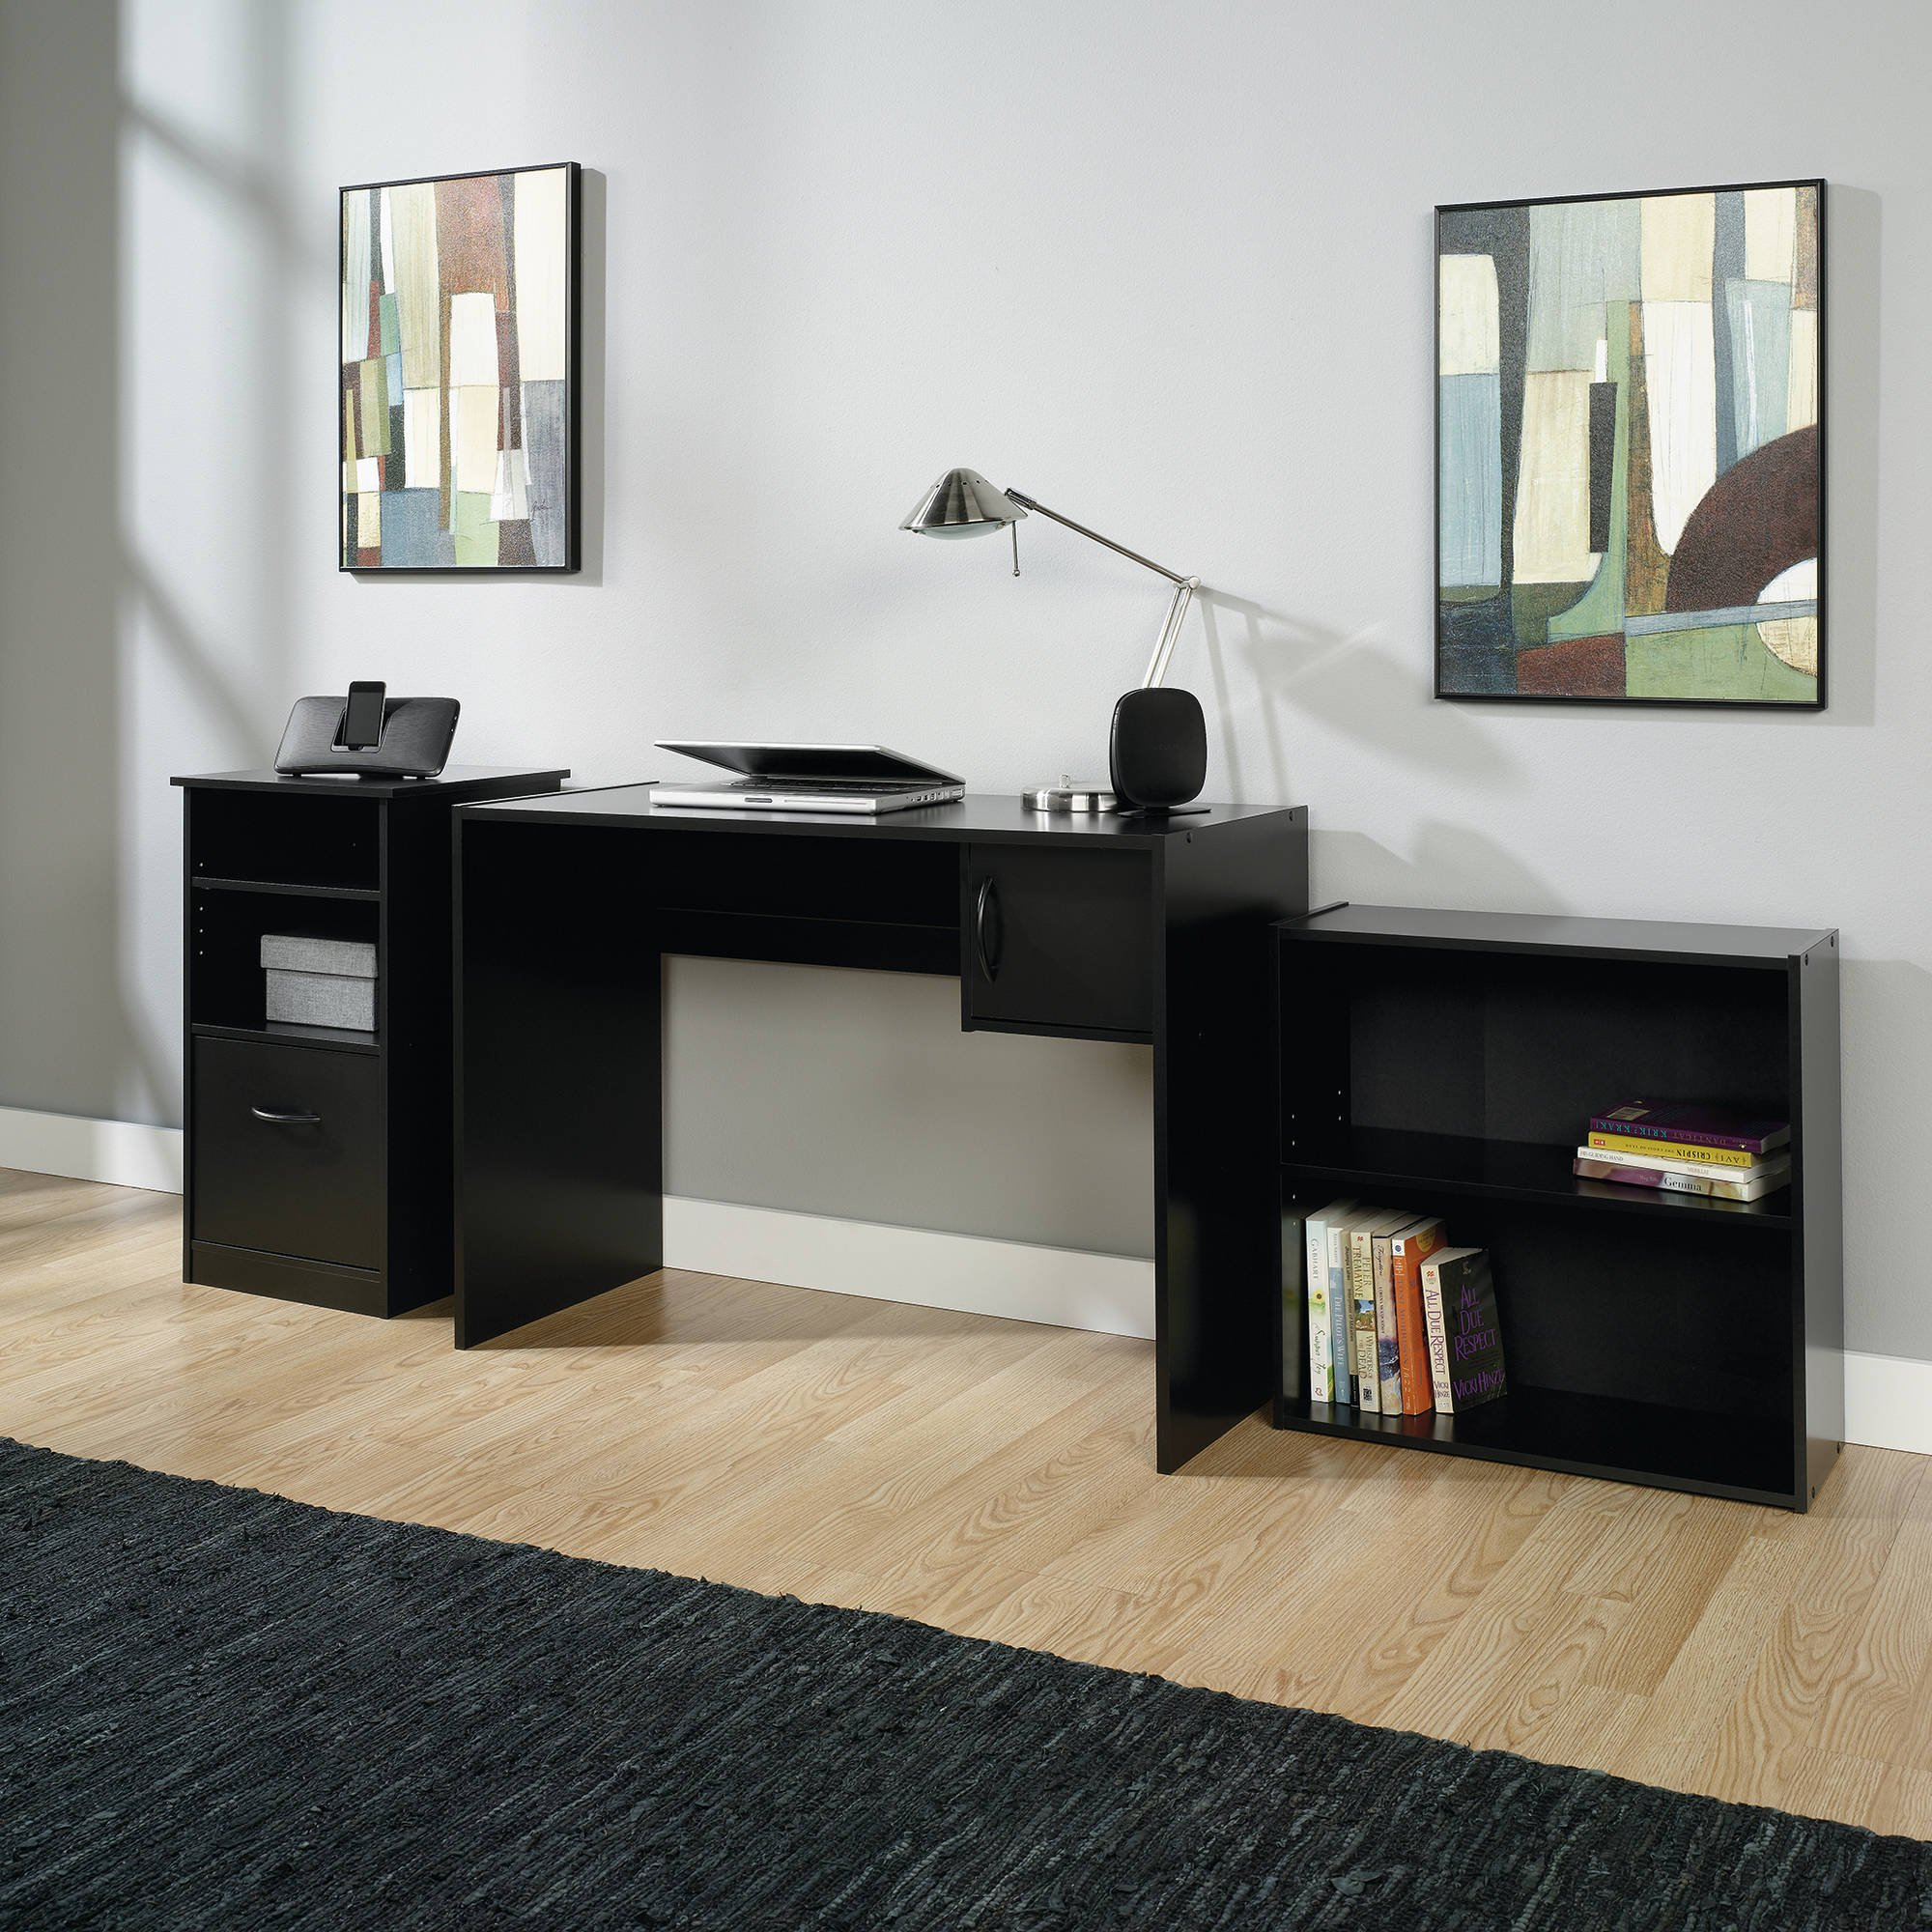 3-Piece Executive Furniture Office Set, Matching Bookcase, Desk and Cabinet with an Elegant Black Finish, Classic Workstation Design Perfect for Organizing Tasks and Projects, For Home or Office use